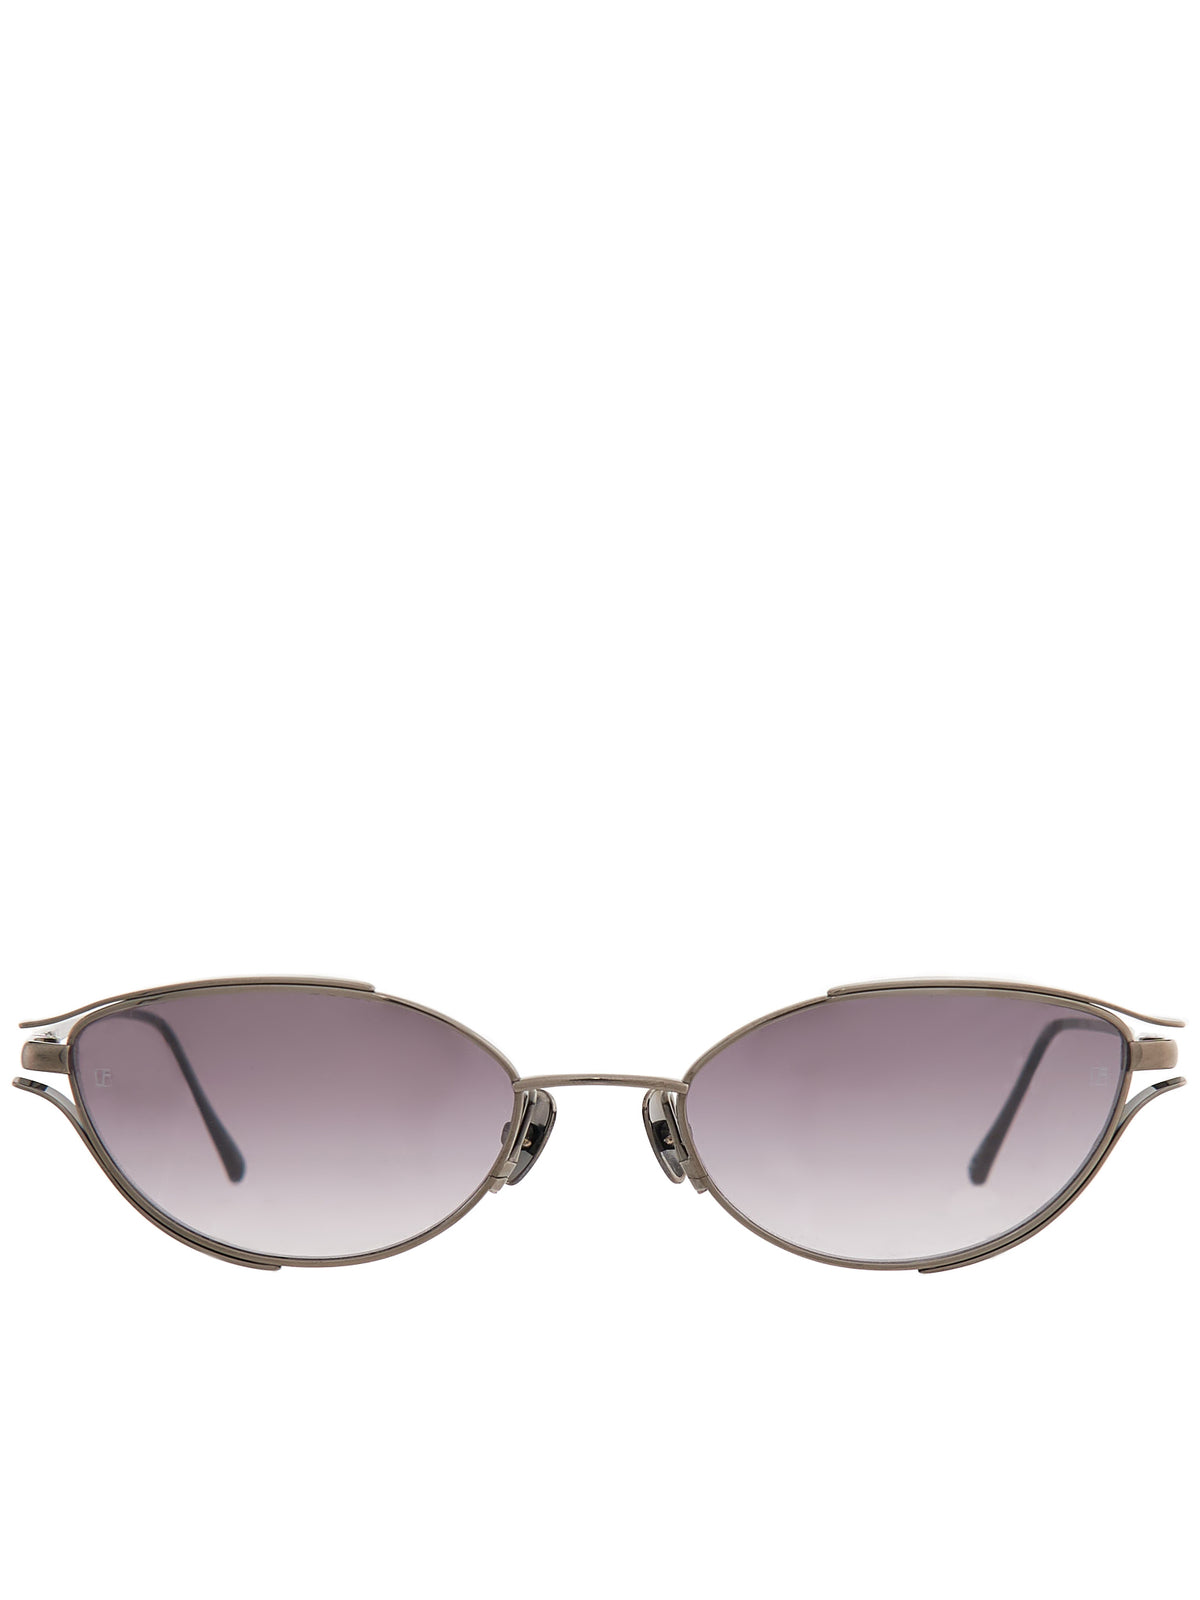 Cat-Eye Sunglasses (LFL947C5SUN-NICKEL-GREY-GRAD)